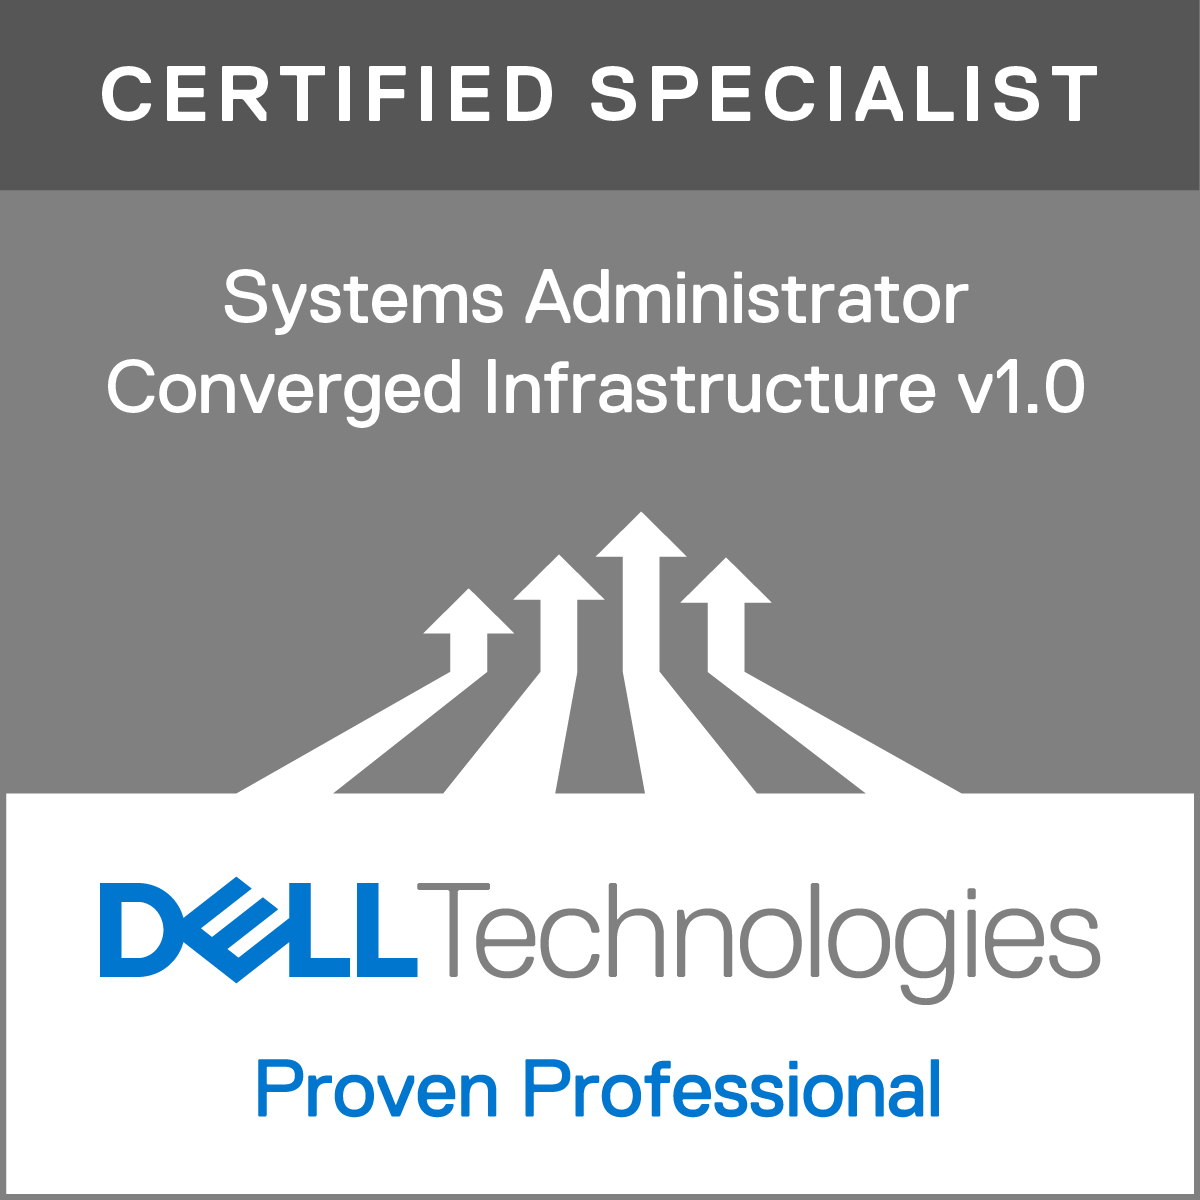 Specialist - Systems Administrator, Converged Infrastructure Version 1.0